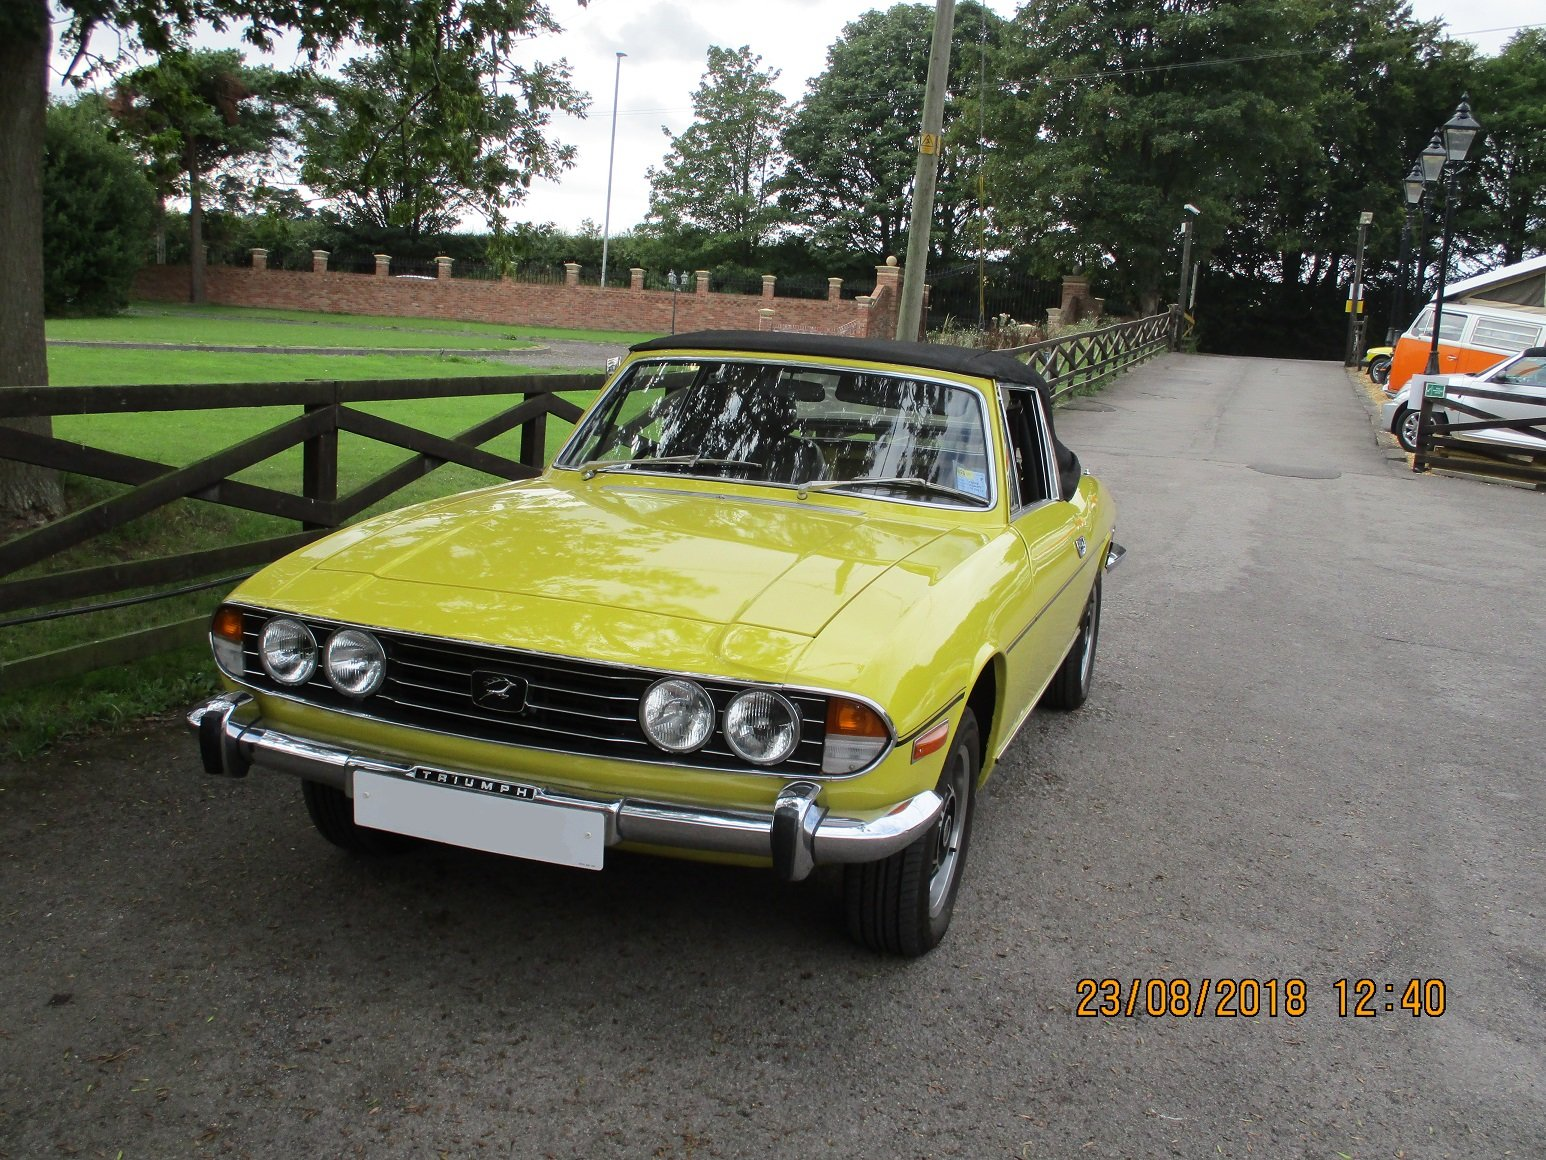 1975 Triumph Stag - Great Condition For Sale (picture 1 of 3)